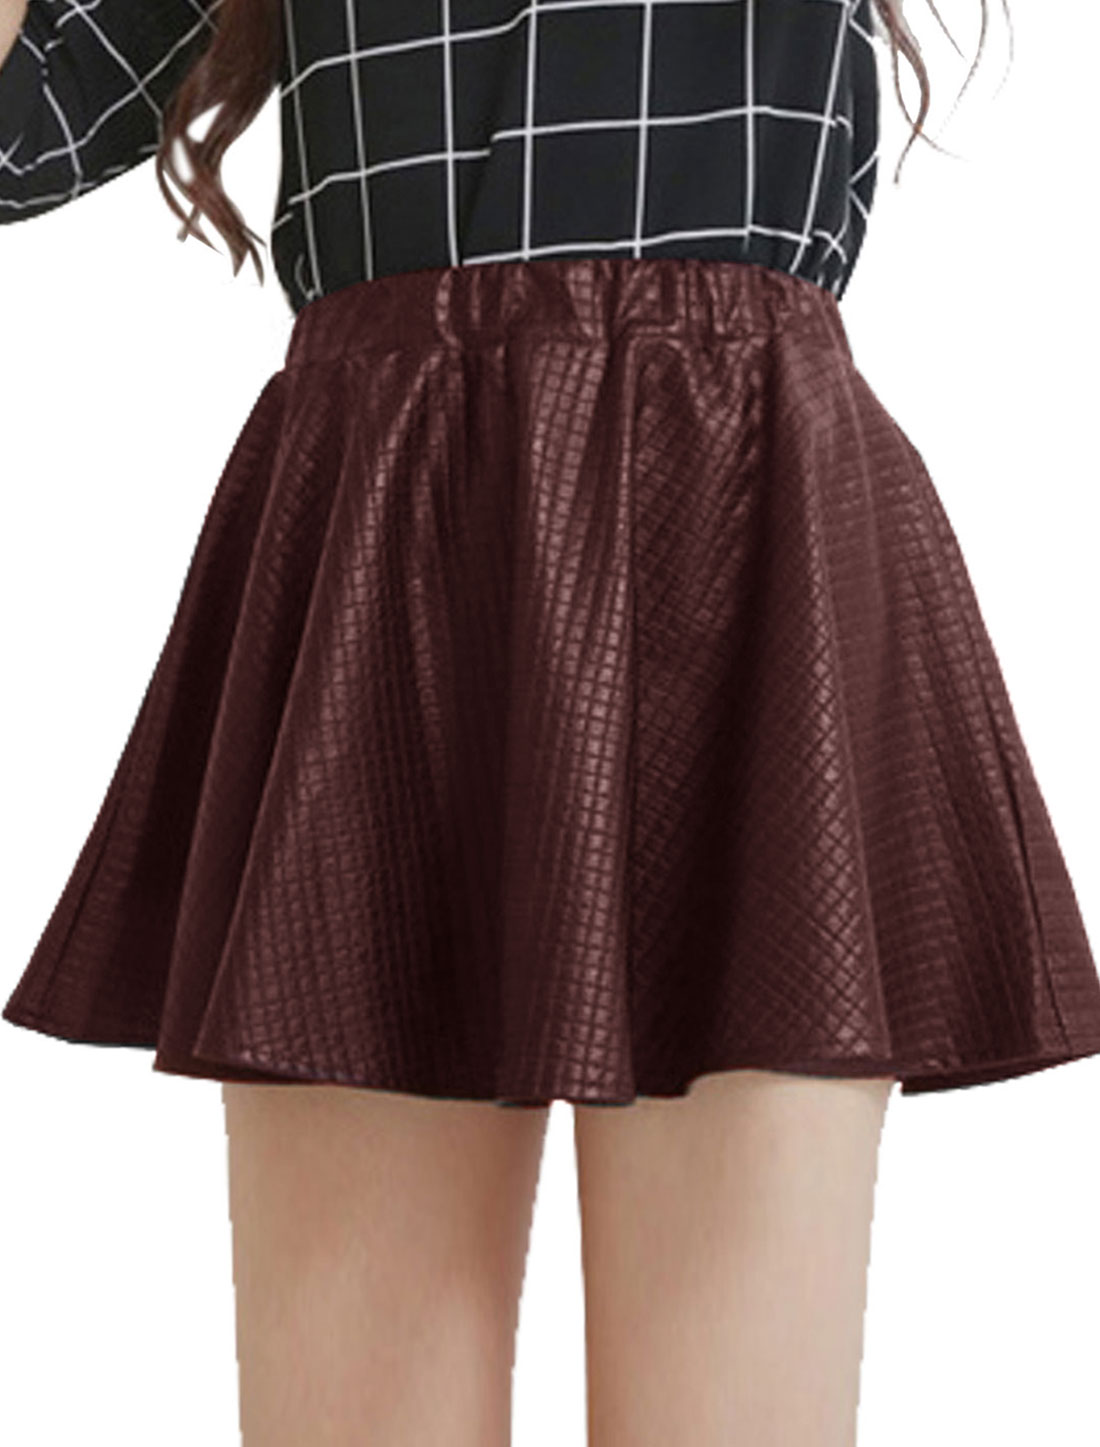 Lady Stretchy Waist Mini Imitation Leather Skirt Burgundy XS